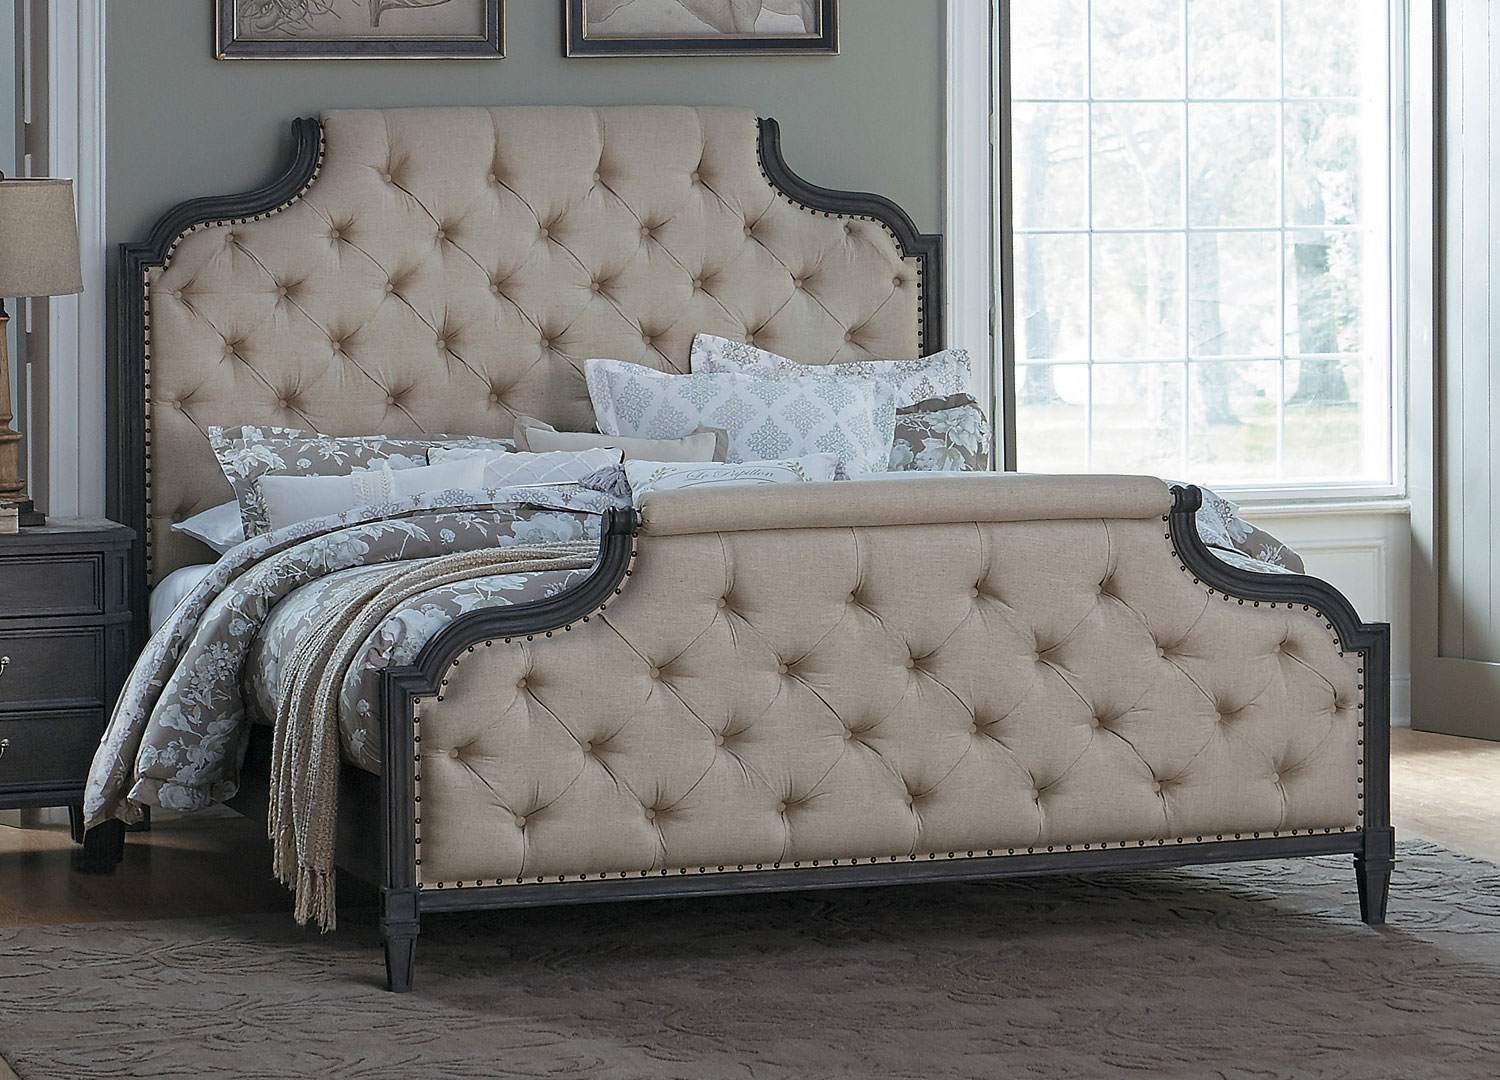 Homelegance Lindley Button Tufted Upholstered Bed - Dusty Gray